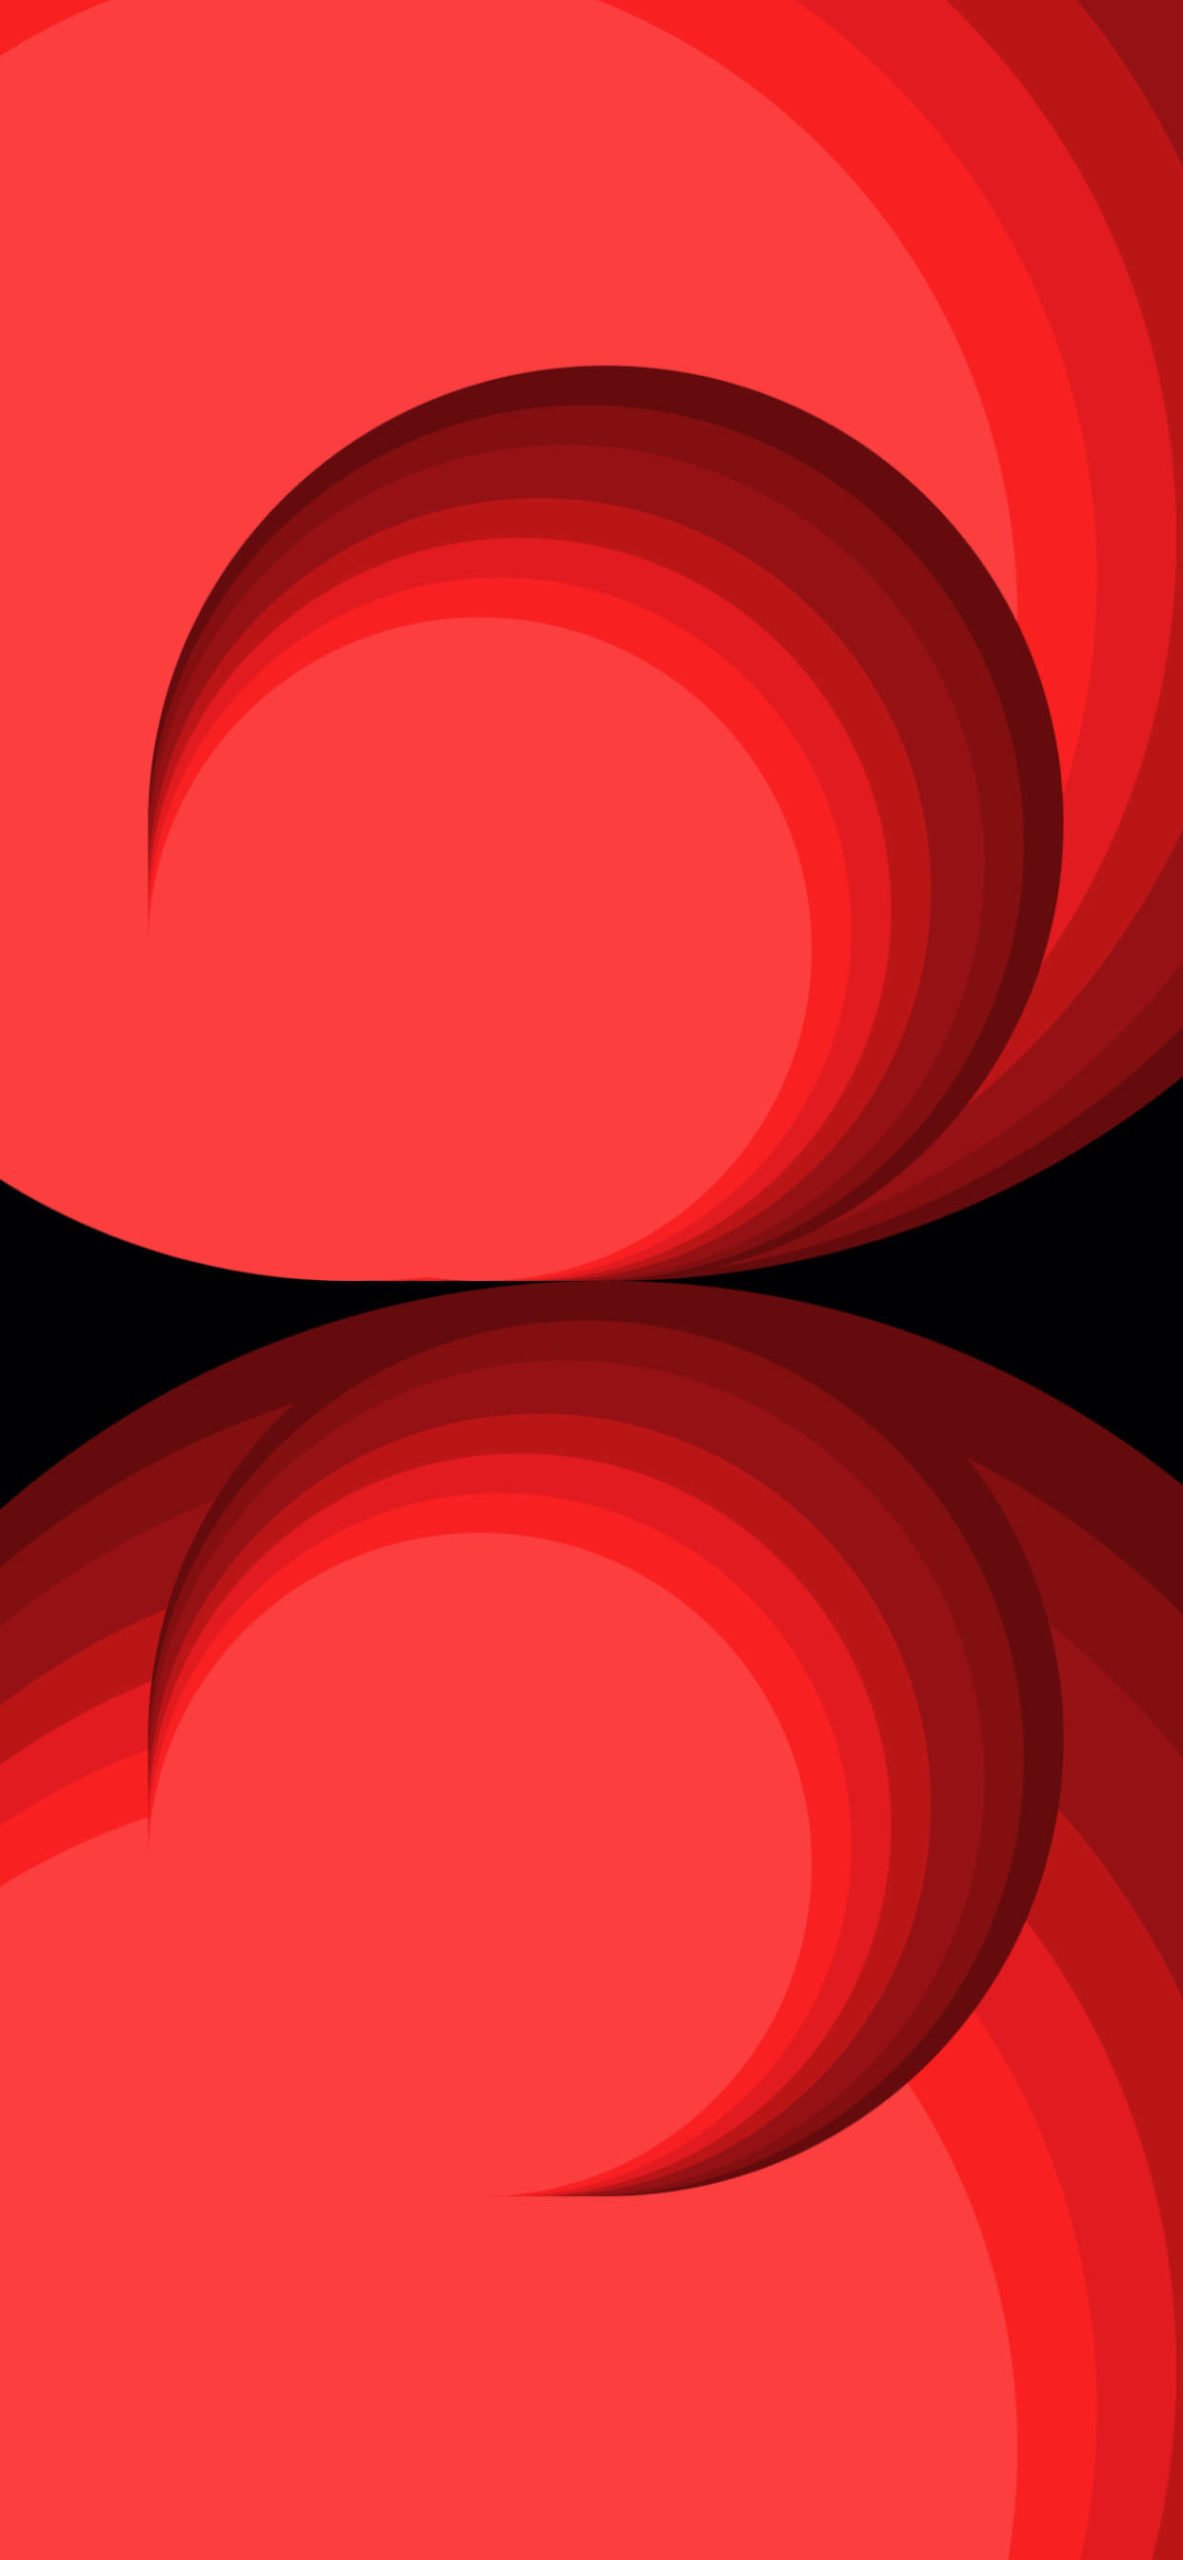 iPhone wallpapers pattern red scaled Patterns